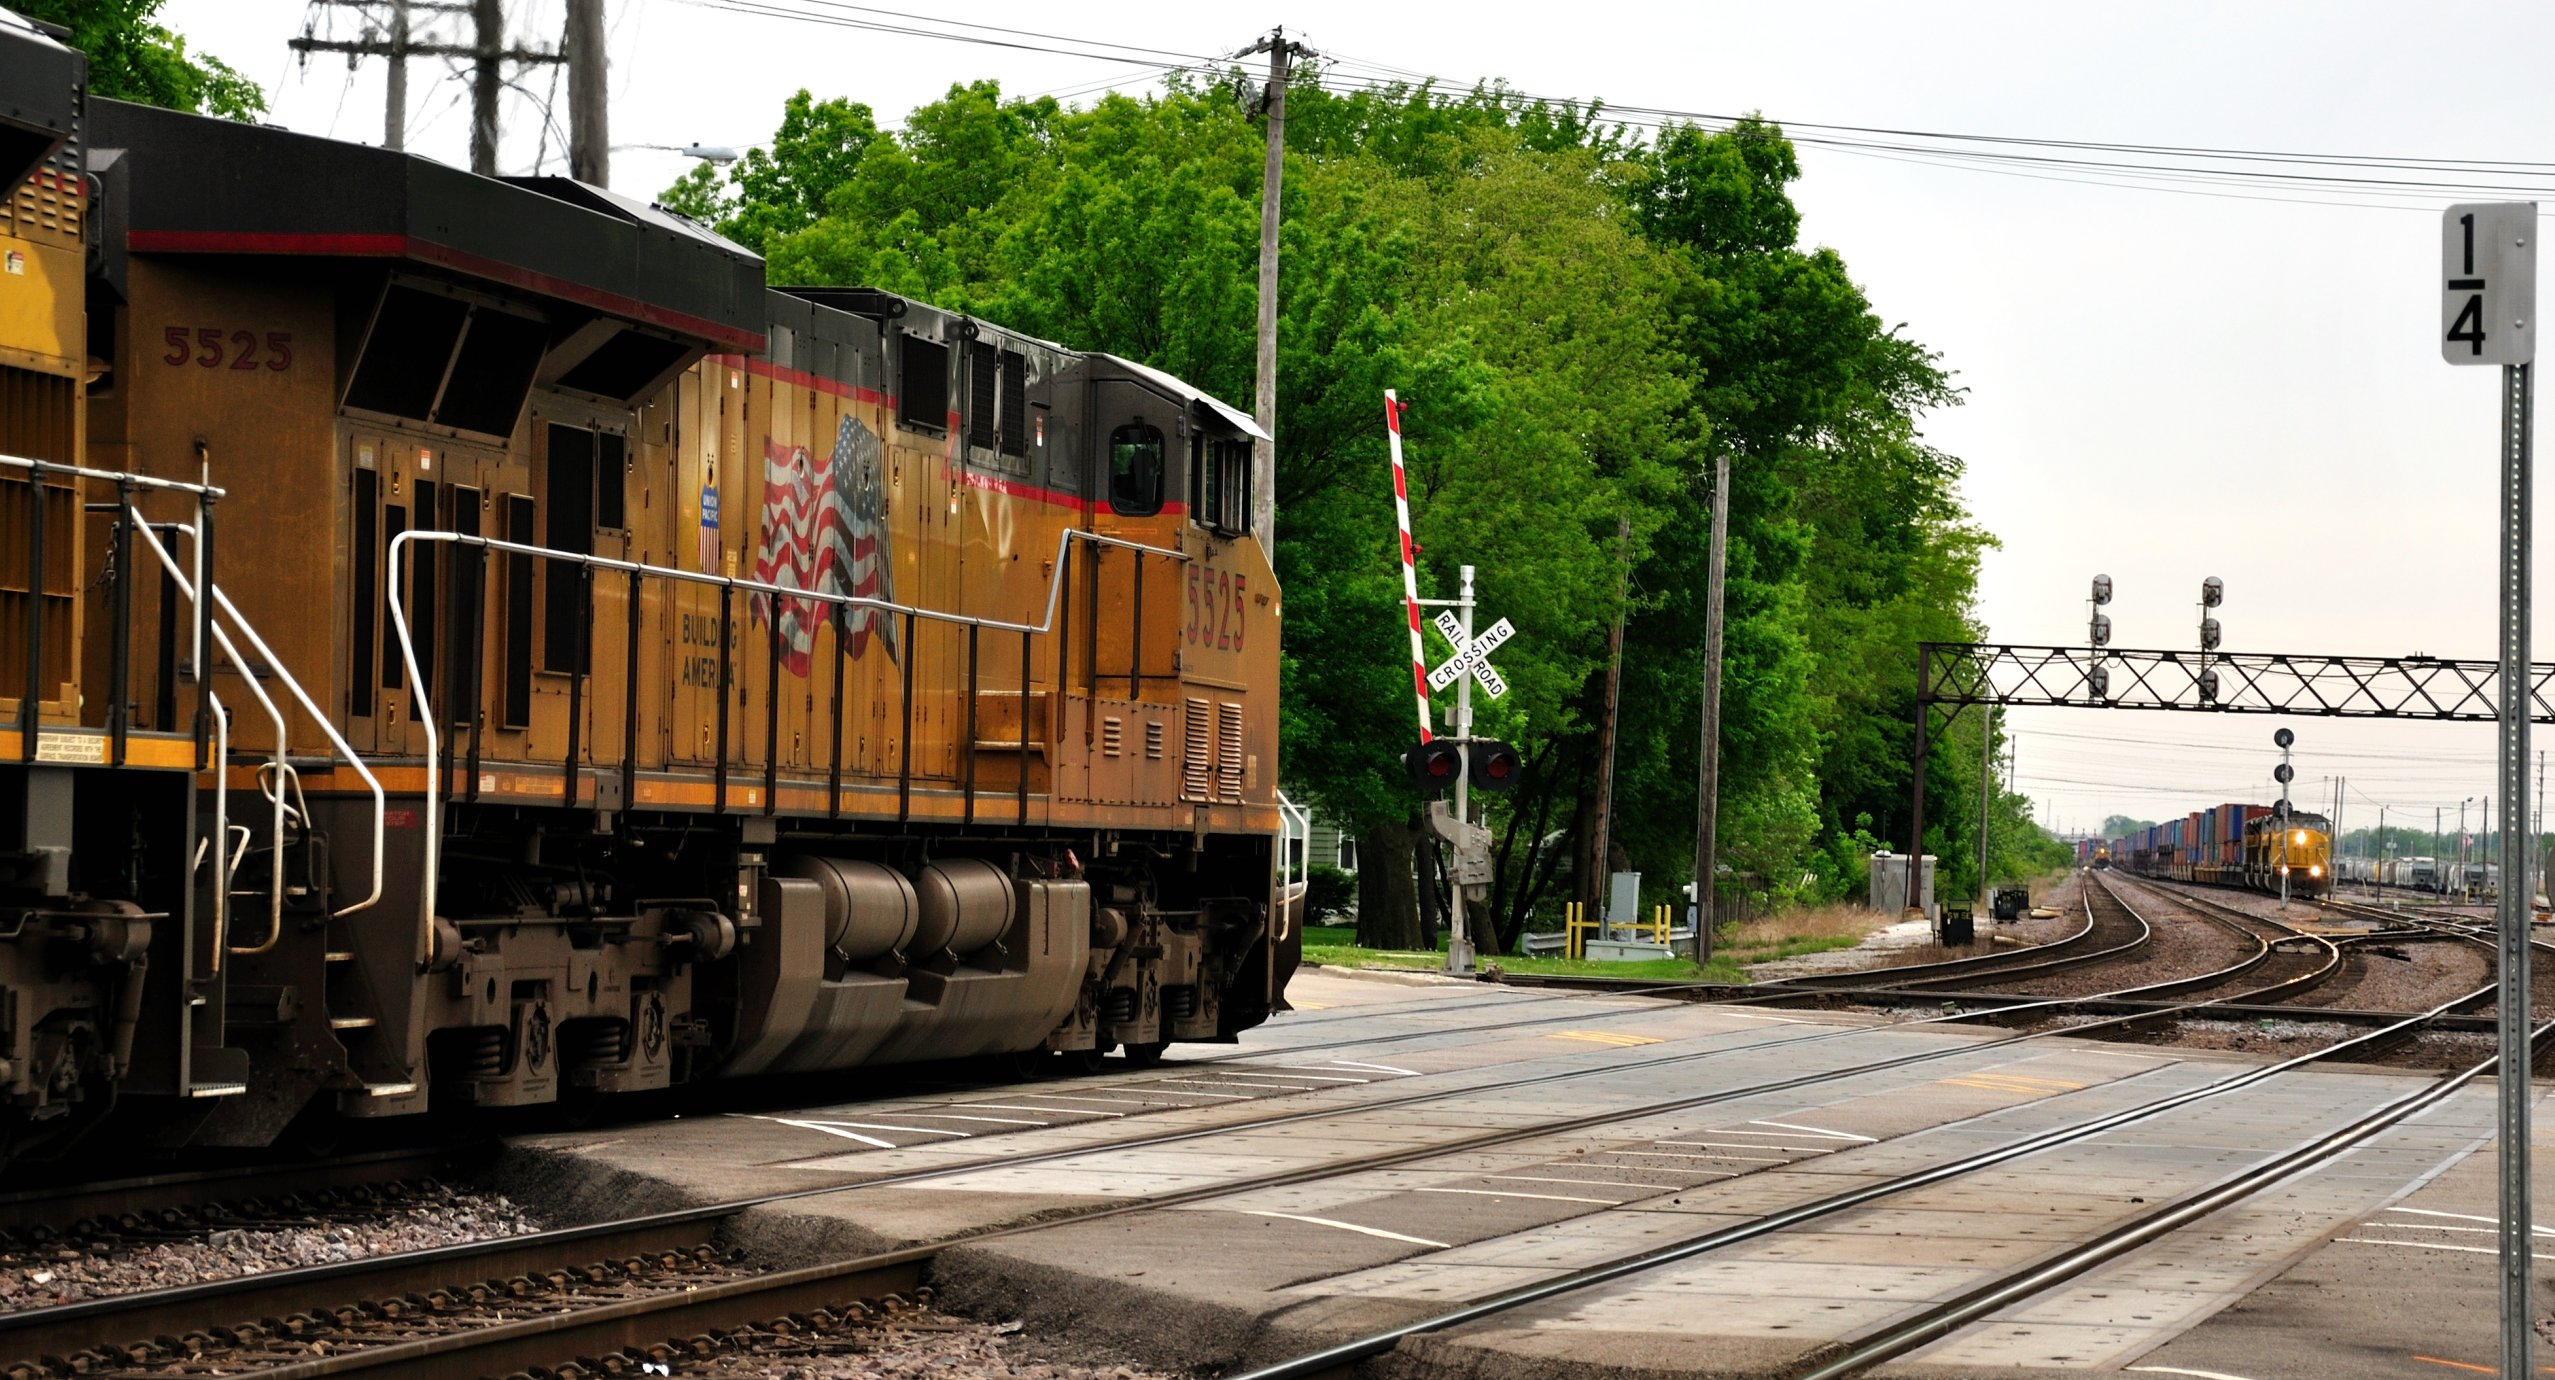 File:Train crossing in West Chicago jpg - Wikimedia Commons